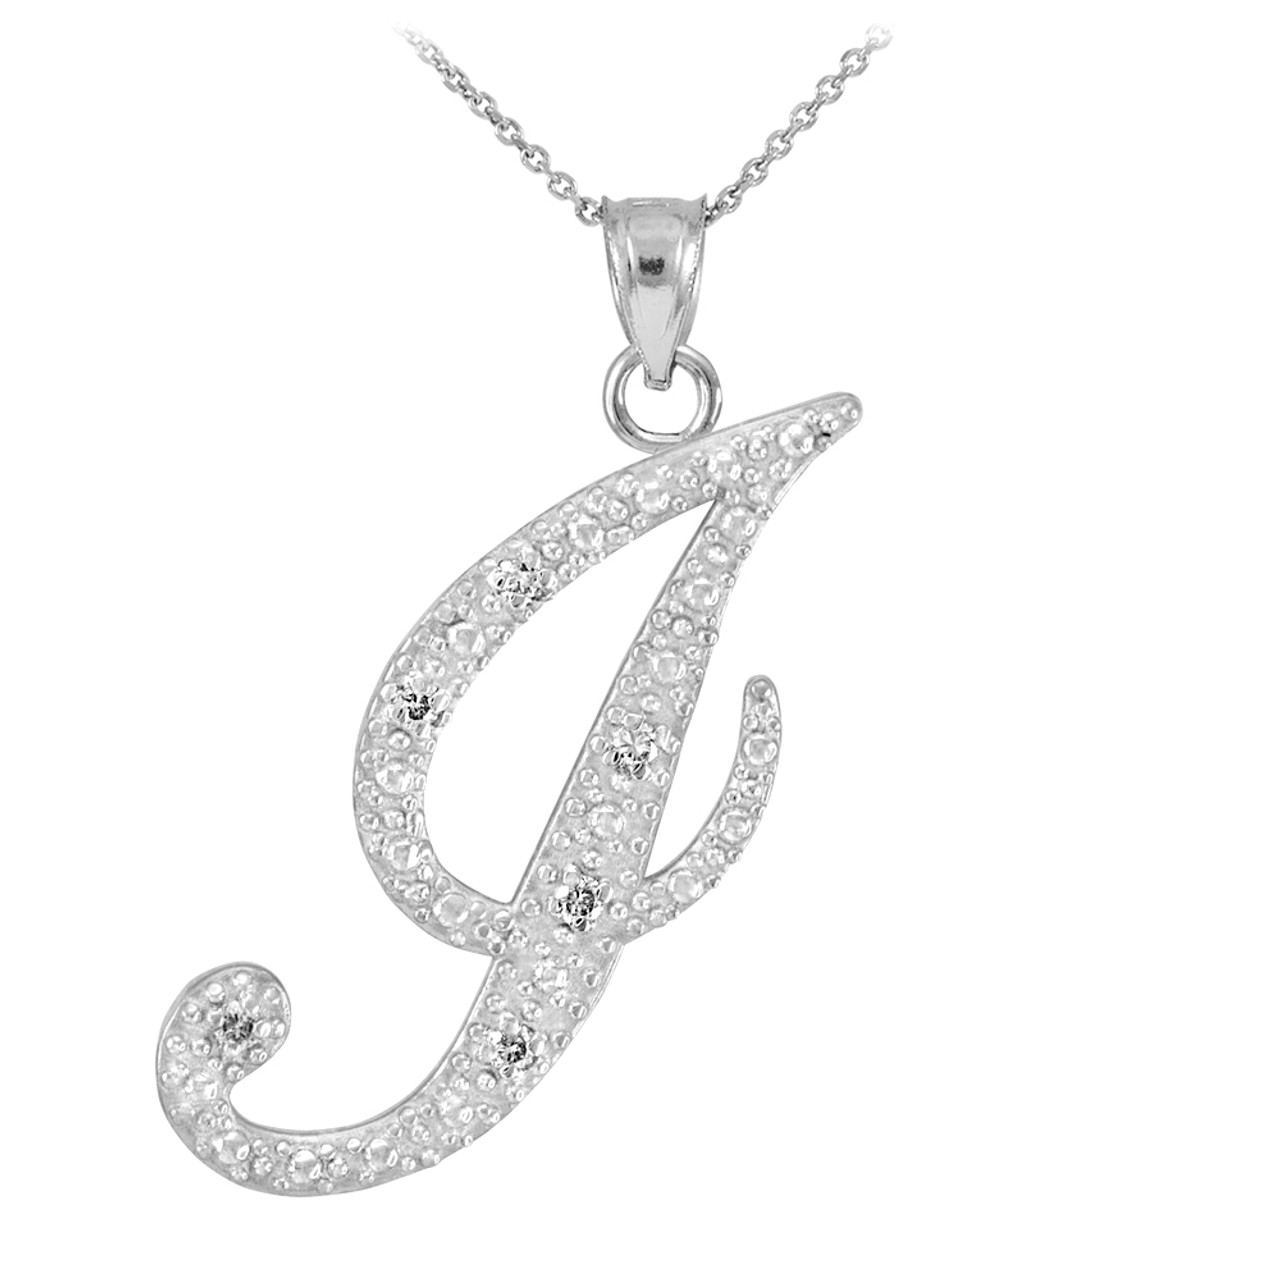 White gold letter script j diamond initial pendant necklace 14k white gold letter script j diamond initial pendant necklace mozeypictures Image collections